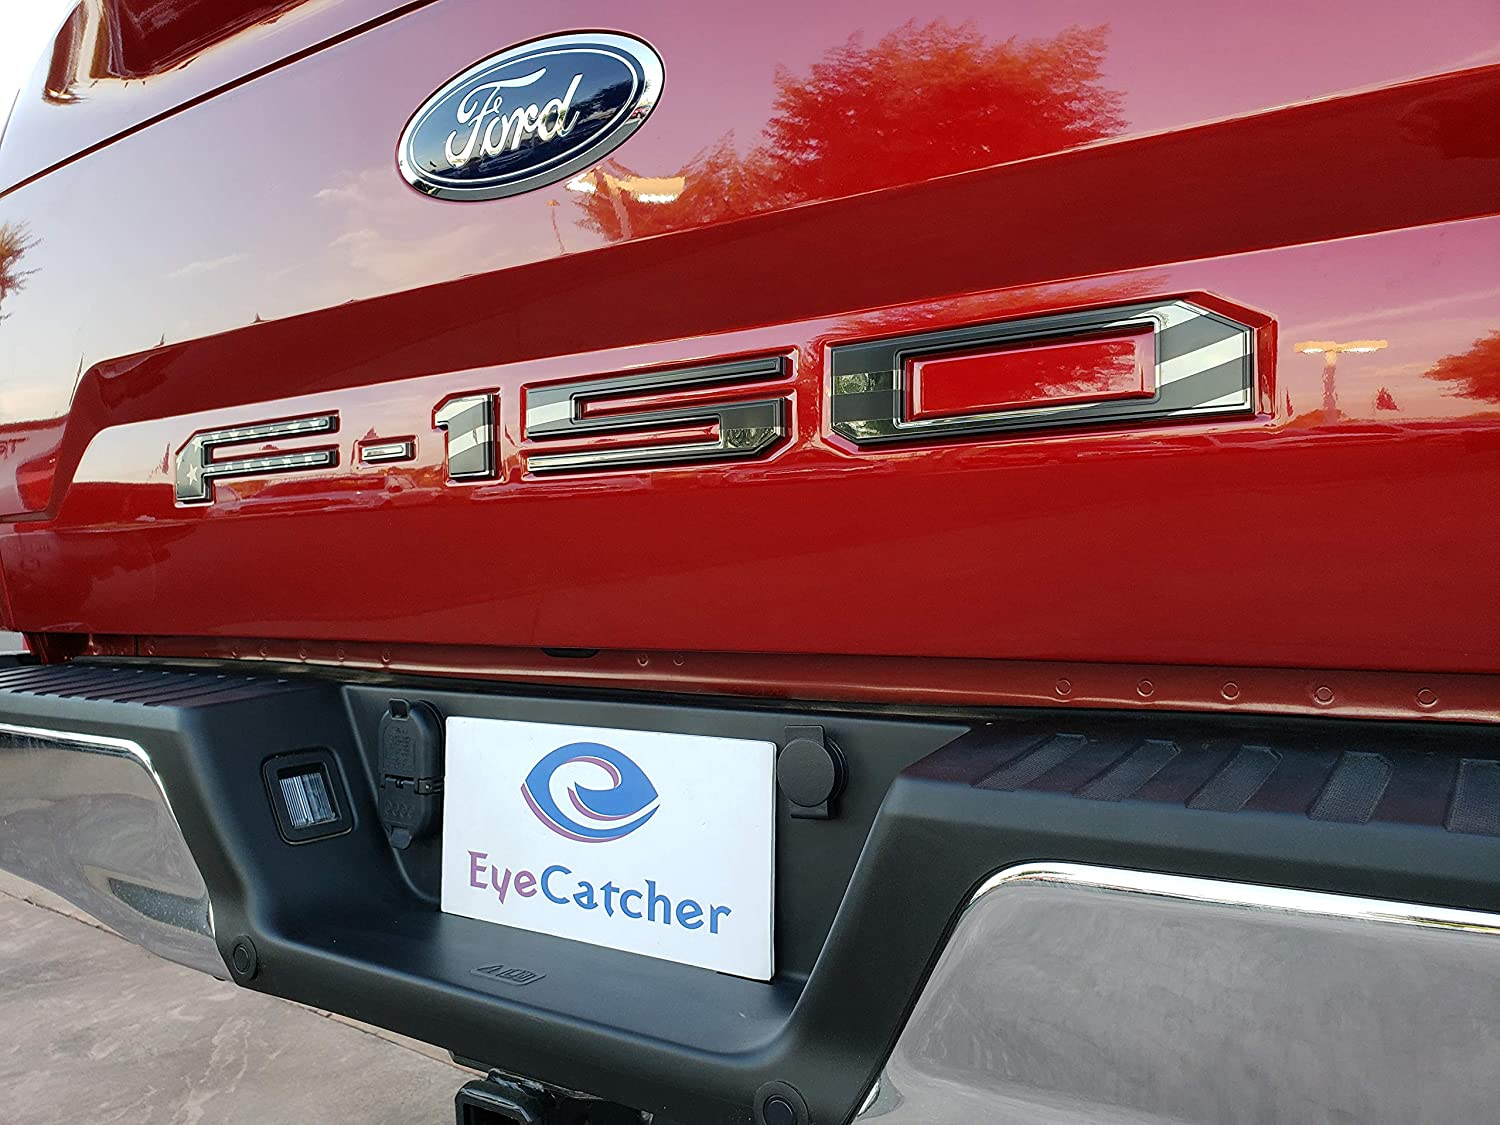 Chrome EyeCatcher Tailgate Insert Letters for 2018-2019 Ford F150